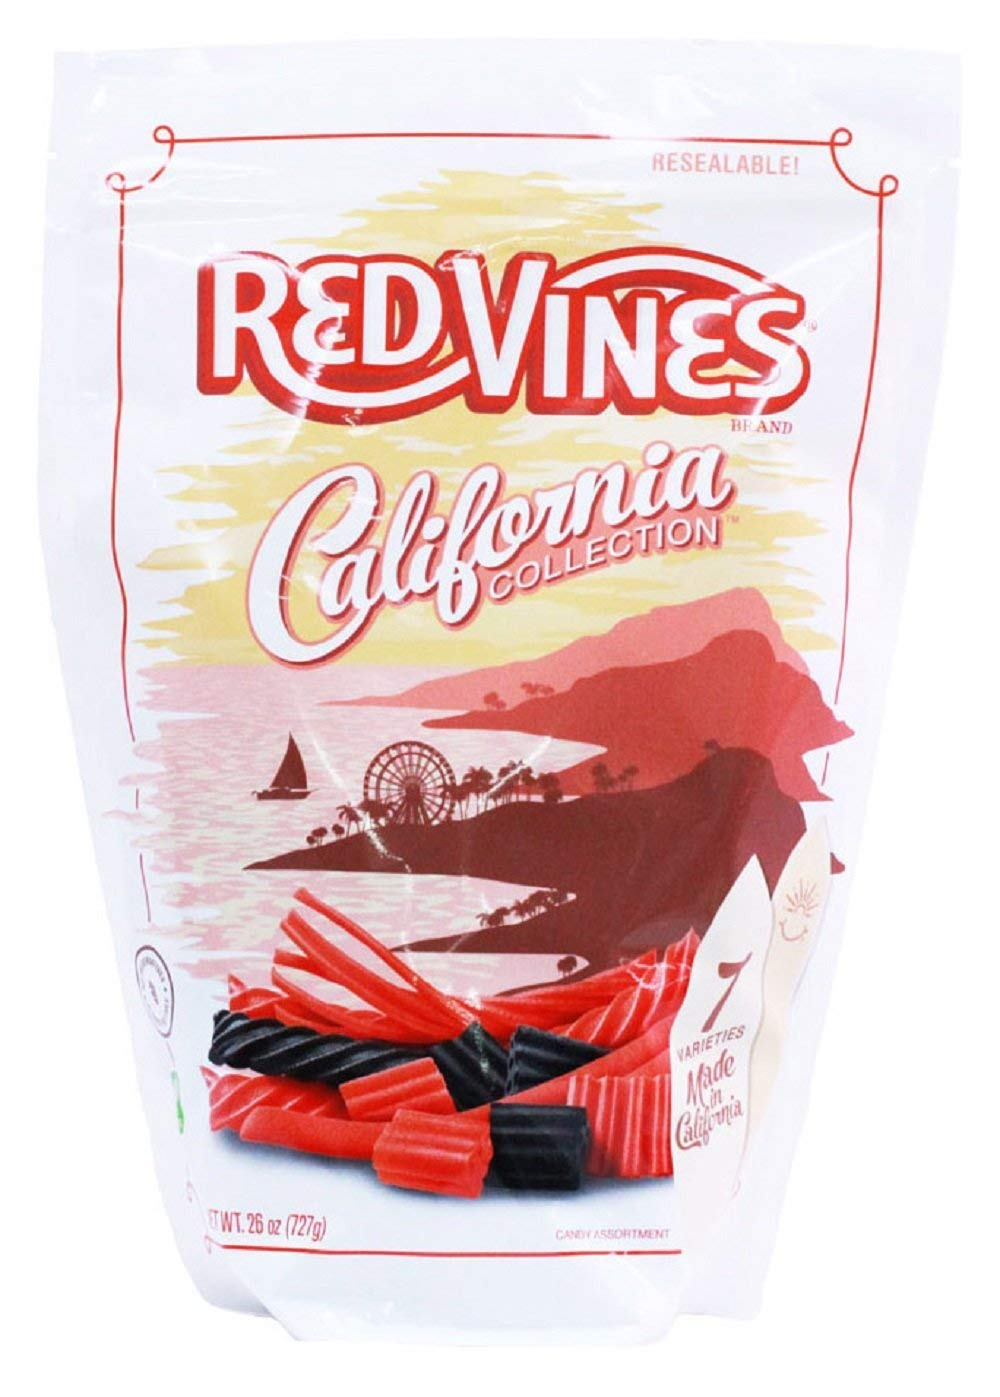 Red Vines Red & Black Licorice Assortment, 26oz Bag(6 Pack), California Collection, Soft & Chewy Candy by Red Vines